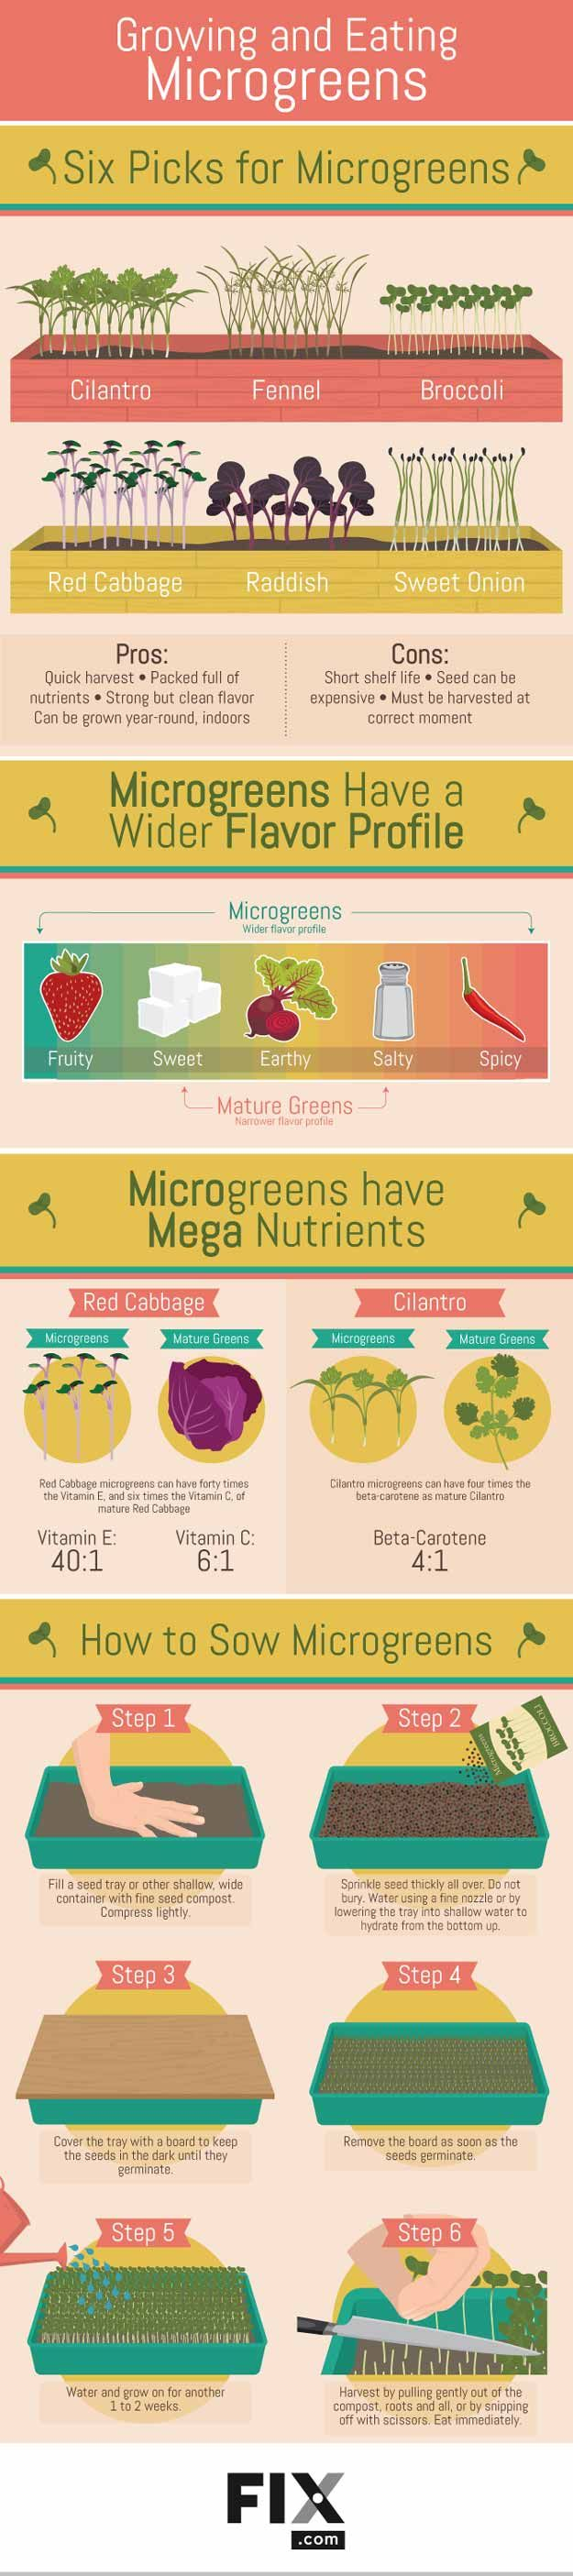 Microgreens Growing Guide For Homesteading | How To Plant And Harvest Microgreens - Gardening Tips And Ideas For Beginners And Expert Gardeners by Pioneer Settler at https://homesteading.com/need-know-microgreens/